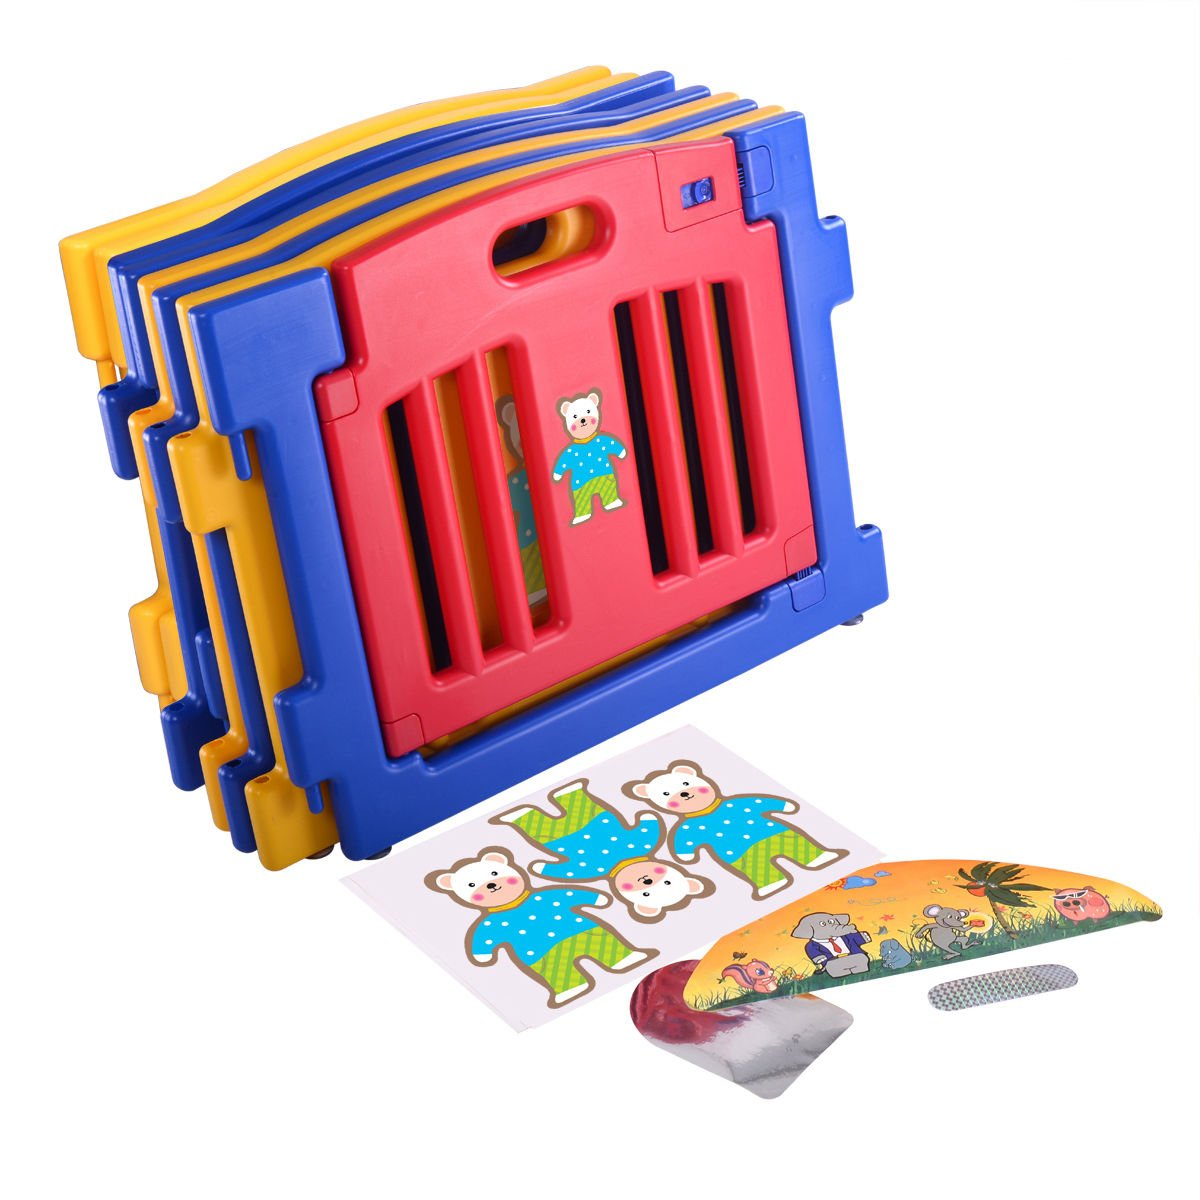 New 8 Panel Safety Play Center Baby Playpen Kids Yard Home Indoor Outdoor Pen by Eade shop (Image #7)